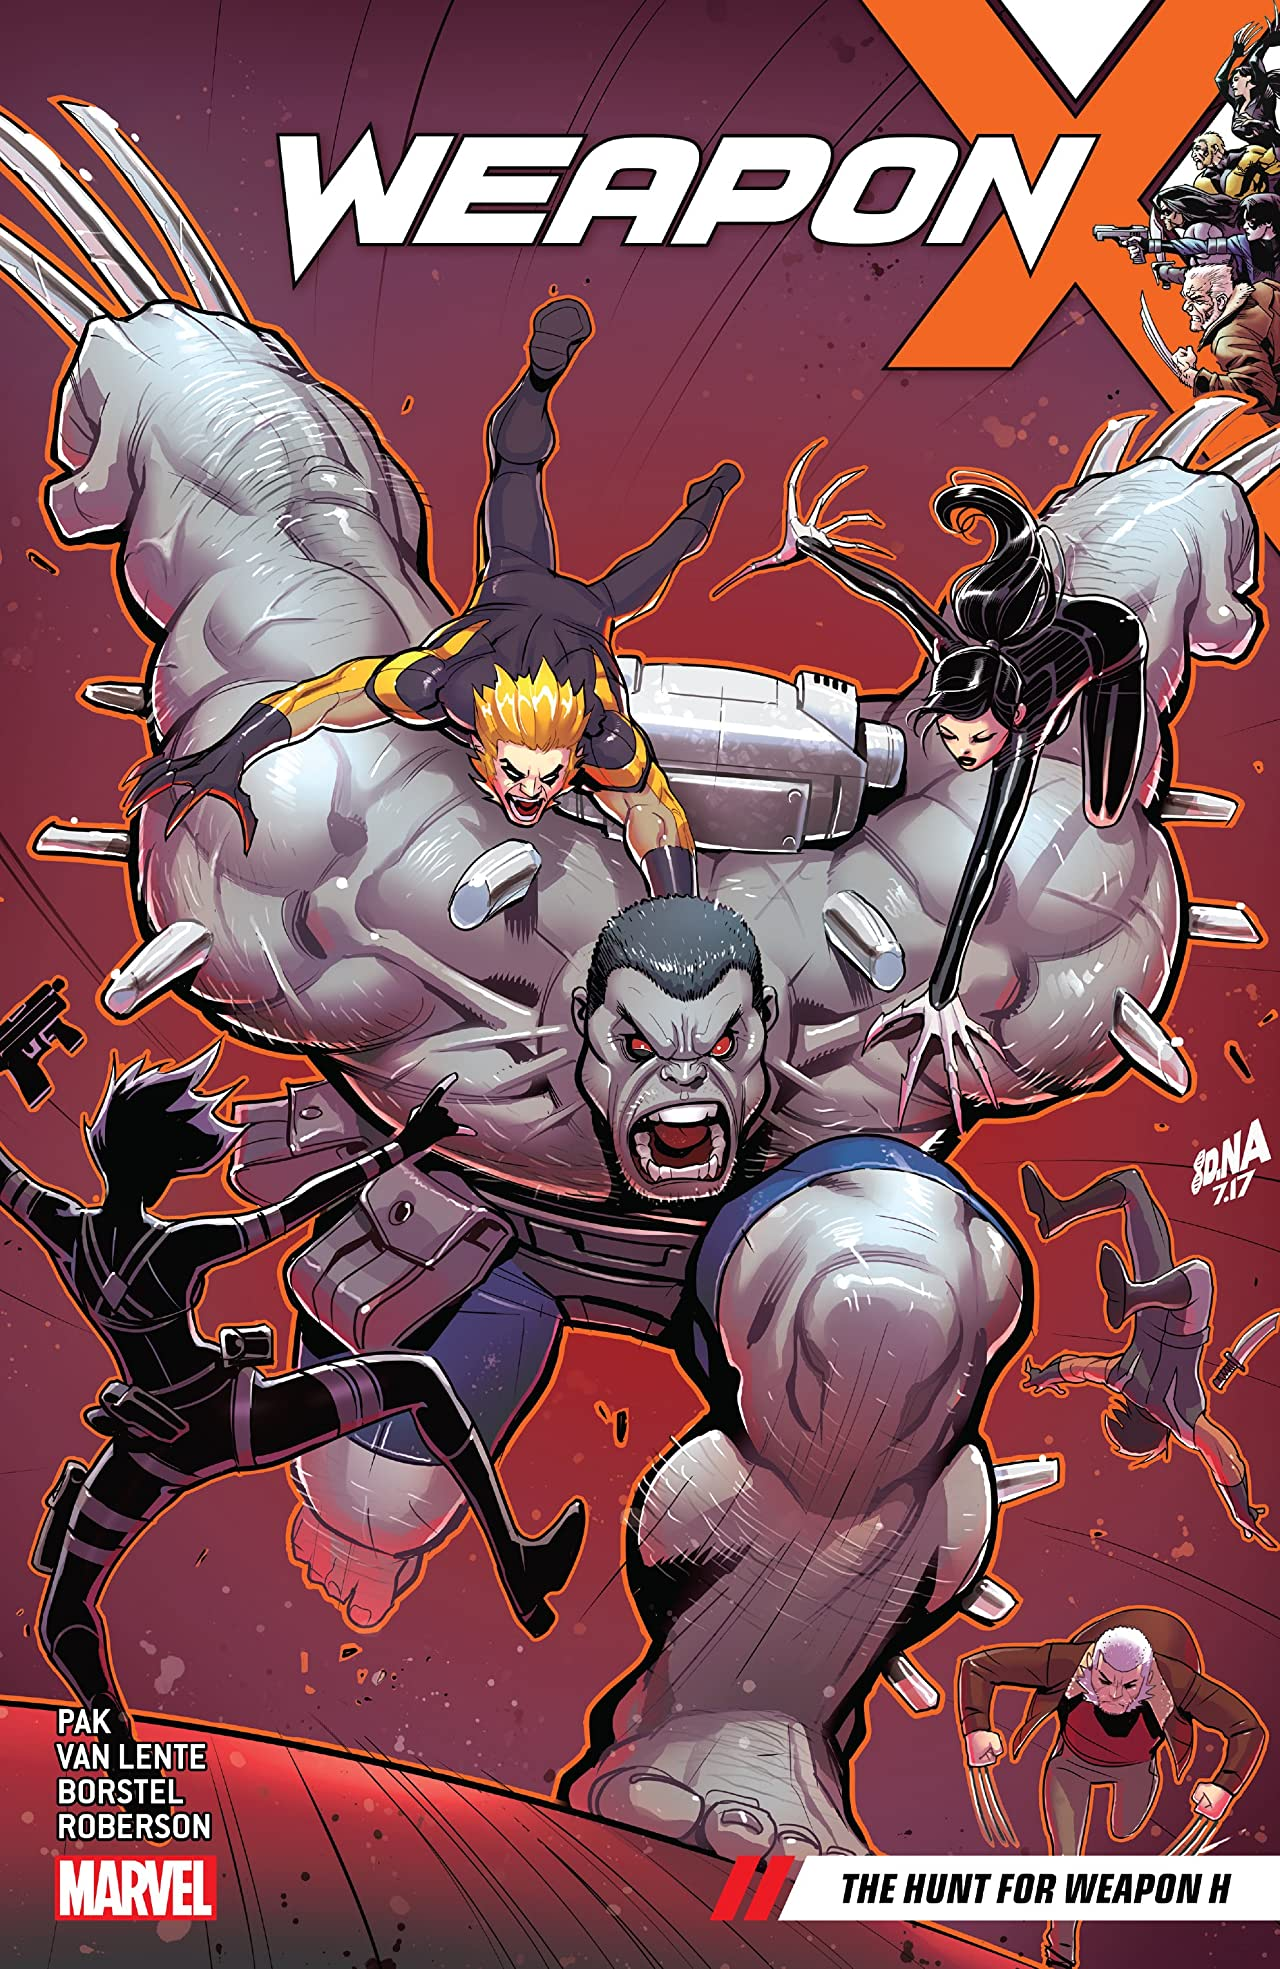 Weapon X Vol. 2: The Hunt For Weapon H